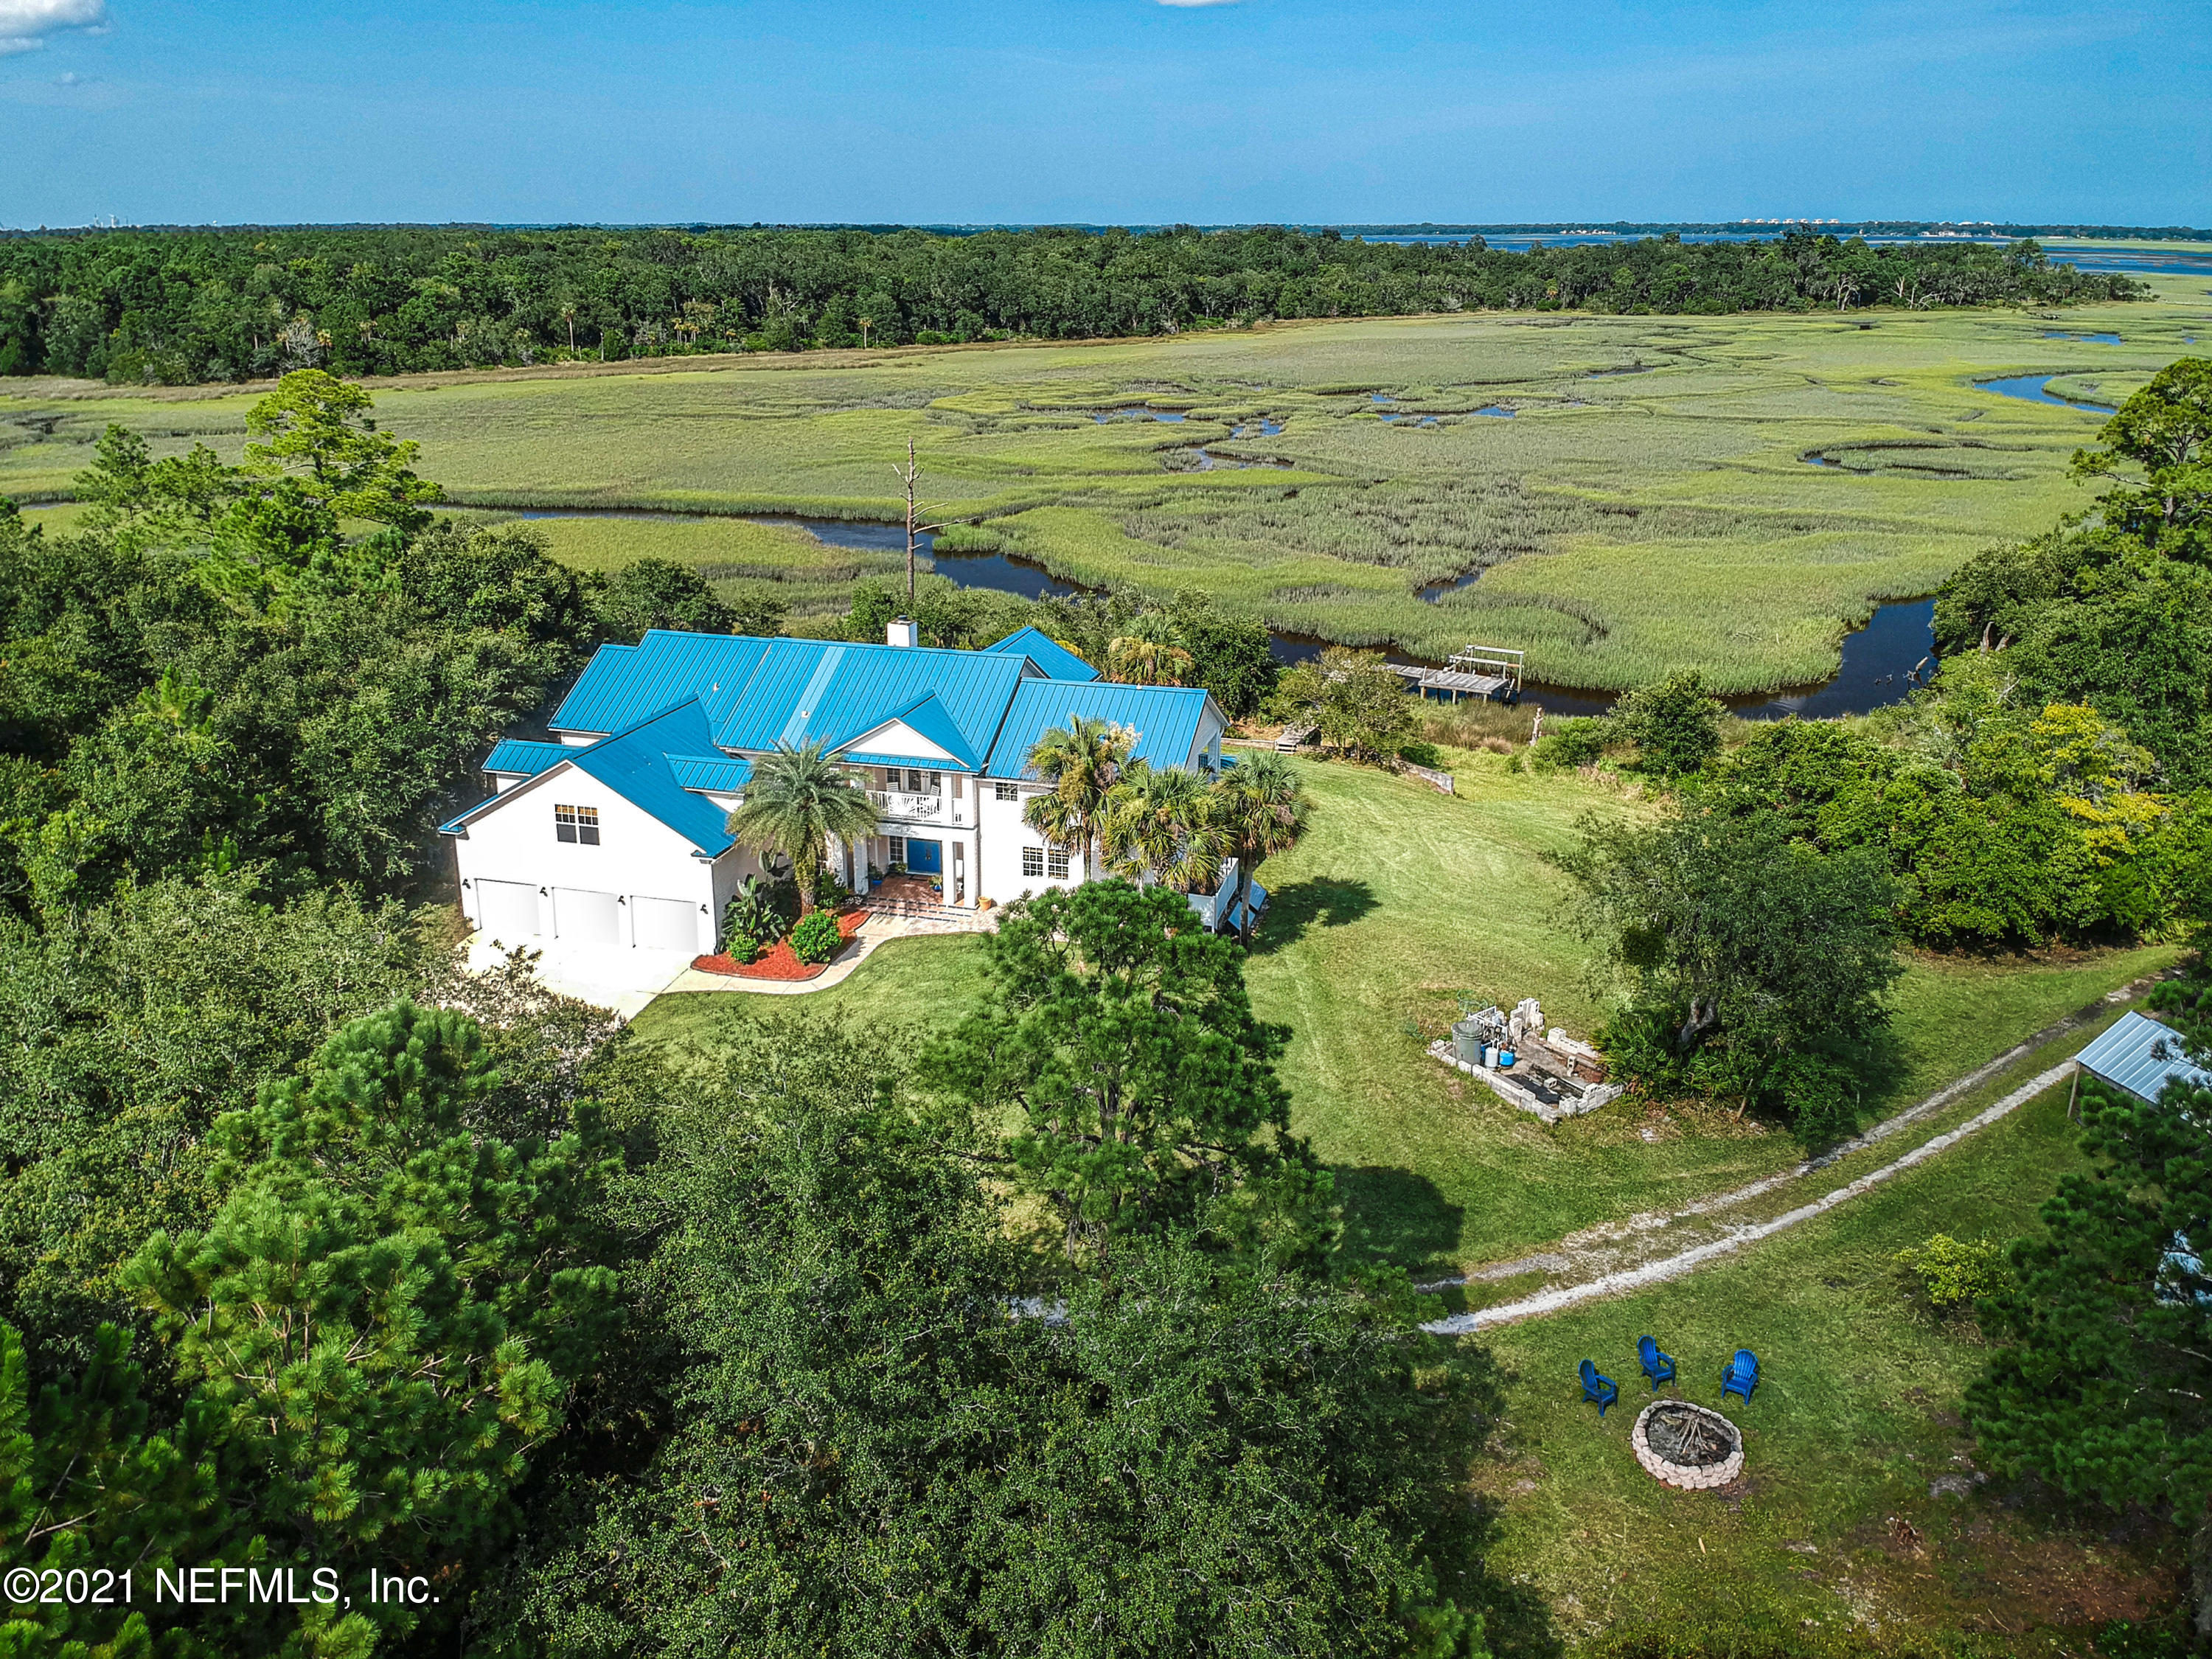 This 4,760 sq ft home with 5 acres has approximately 500 feet of marsh with tidal creek frontage and sits at an elevation of 16 ft, providing a high and dry sanctuary with exceptional & expansive views of the Nassau River, Amelia Island and is only 30 minutes to Jacksonville International Airport. Tide levels vary from 6 inches to over 6 ft. Shallow draft fishing or kayaking accessible from the dock or you can use two public boat ramps less than 2 miles away for deeper water. This property is not in a flood zone. With 5 bedrooms, 3.5 baths this home has a private ground floor guest or family member suite with kitchenette, living room, bedroom, walk-in closet, ADA shower room, linen closet and WC. The primary suite upstairs has panoramic views of the marsh and a private porch. Office or De downstairs, large flex or game room upstairs. The walkway that separates the primary side from guest side bedrooms is where the WOW factor comes in with stunning views and overlooking the great room below. 95104 Mango Lane is a perfect retreat, quiet and secluded with over 1700 sq ft of porches to relax or entertain. Light, bright and airy, the house boasts plenty of open space to gather or areas to retreat to when you need a bit of privacy. Wired for music inside and out. You can fish, kayak, paddle board, bird watch and so much more! Light up the fire pit and roast s'mores! This property features enough land to build an additional home, swimming pool, boat house, etc. Adjoining land to purchase is an option. Closets galore, you will not lack storage space. Well water- no city water bill. No HOA. Has septic and irrigation systems. A natural spring fed pond, dock, 3 bay garage, interior laundry and & water softener (conveys).